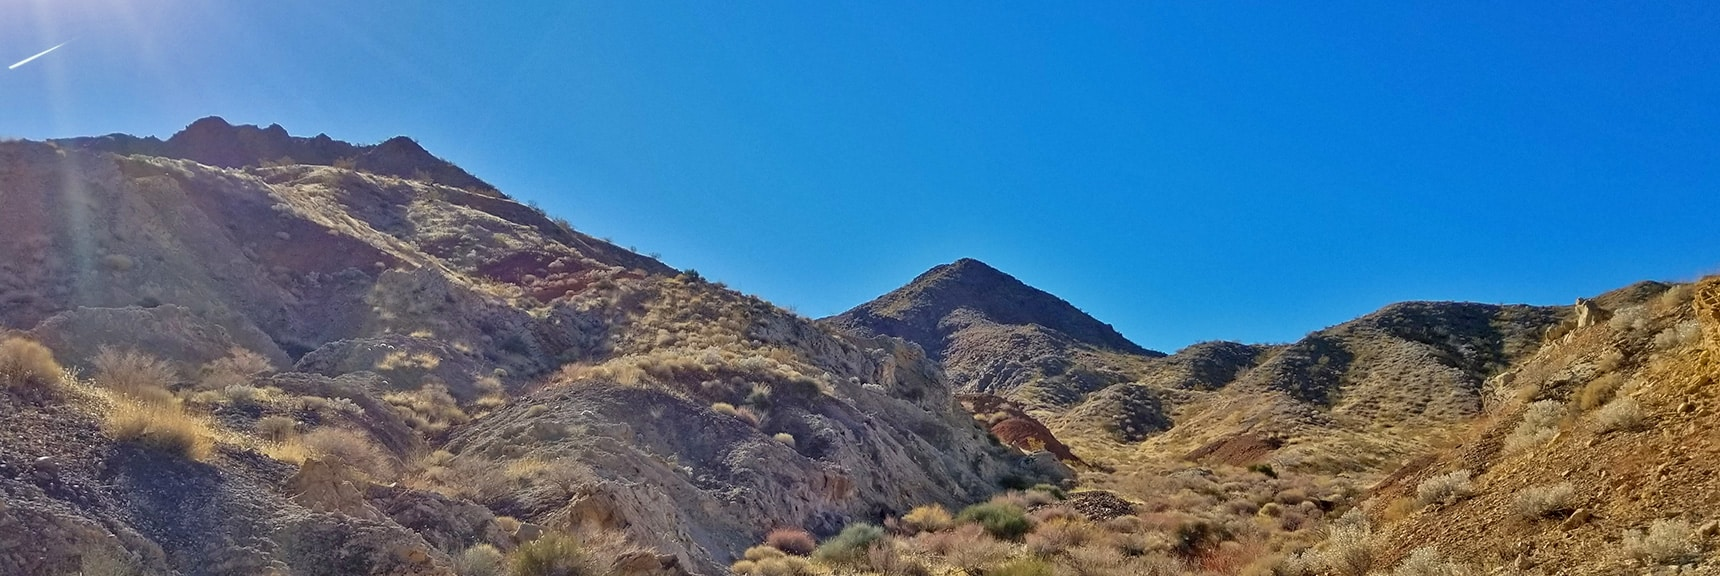 First View of Hamblin Mt. Through Approach Washes | Hamblin Mountain, Lake Mead National Conservation Area, Nevada